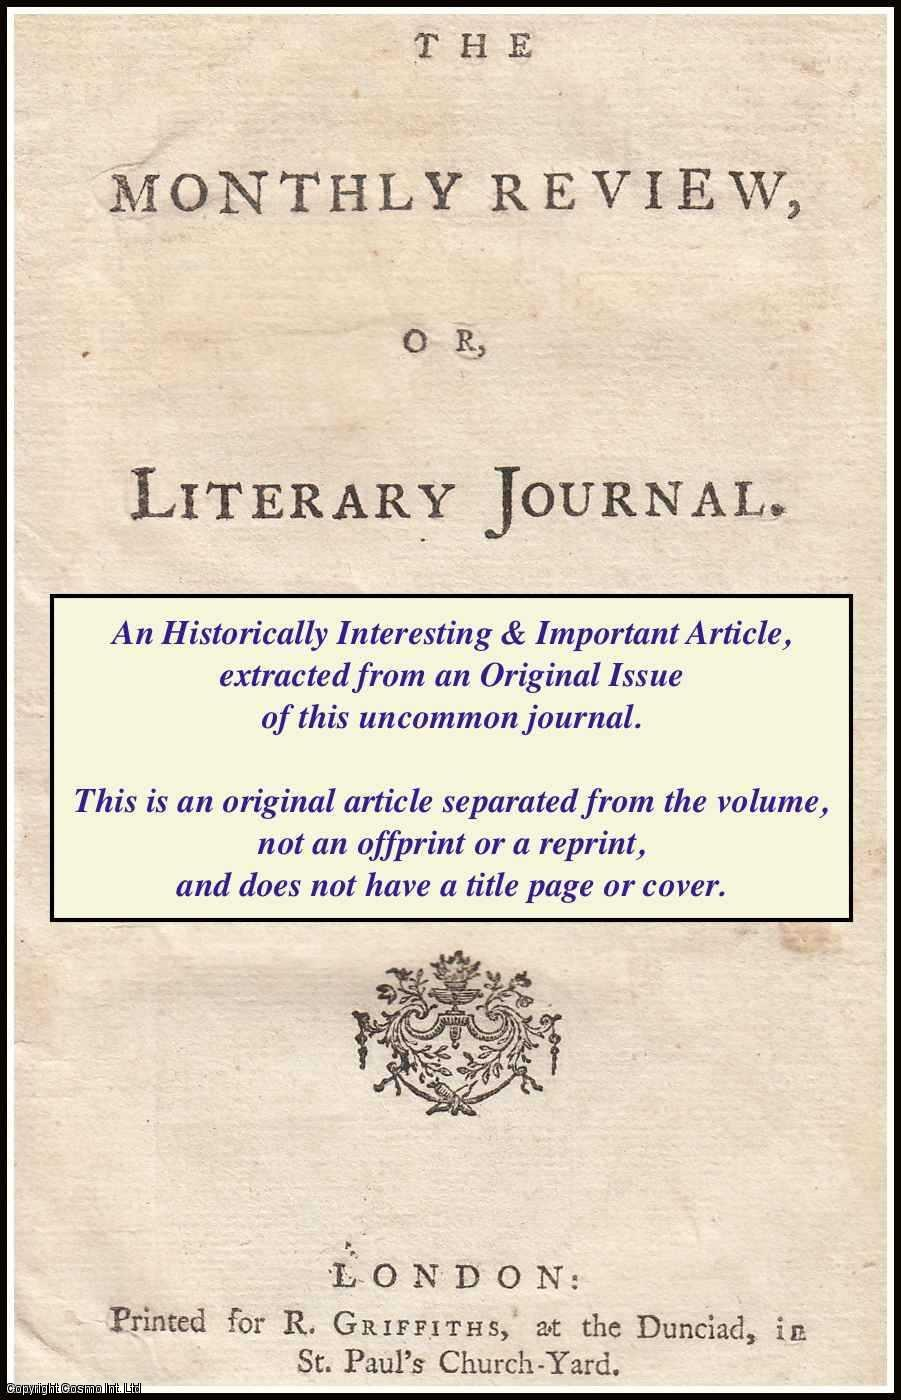 --- - Memoirs of The Life and Writings of The Hon. Henry Home of Kames, one of The Senators of The College of Justice Â' Published 1807. An original article from the Monthly Review 1810.